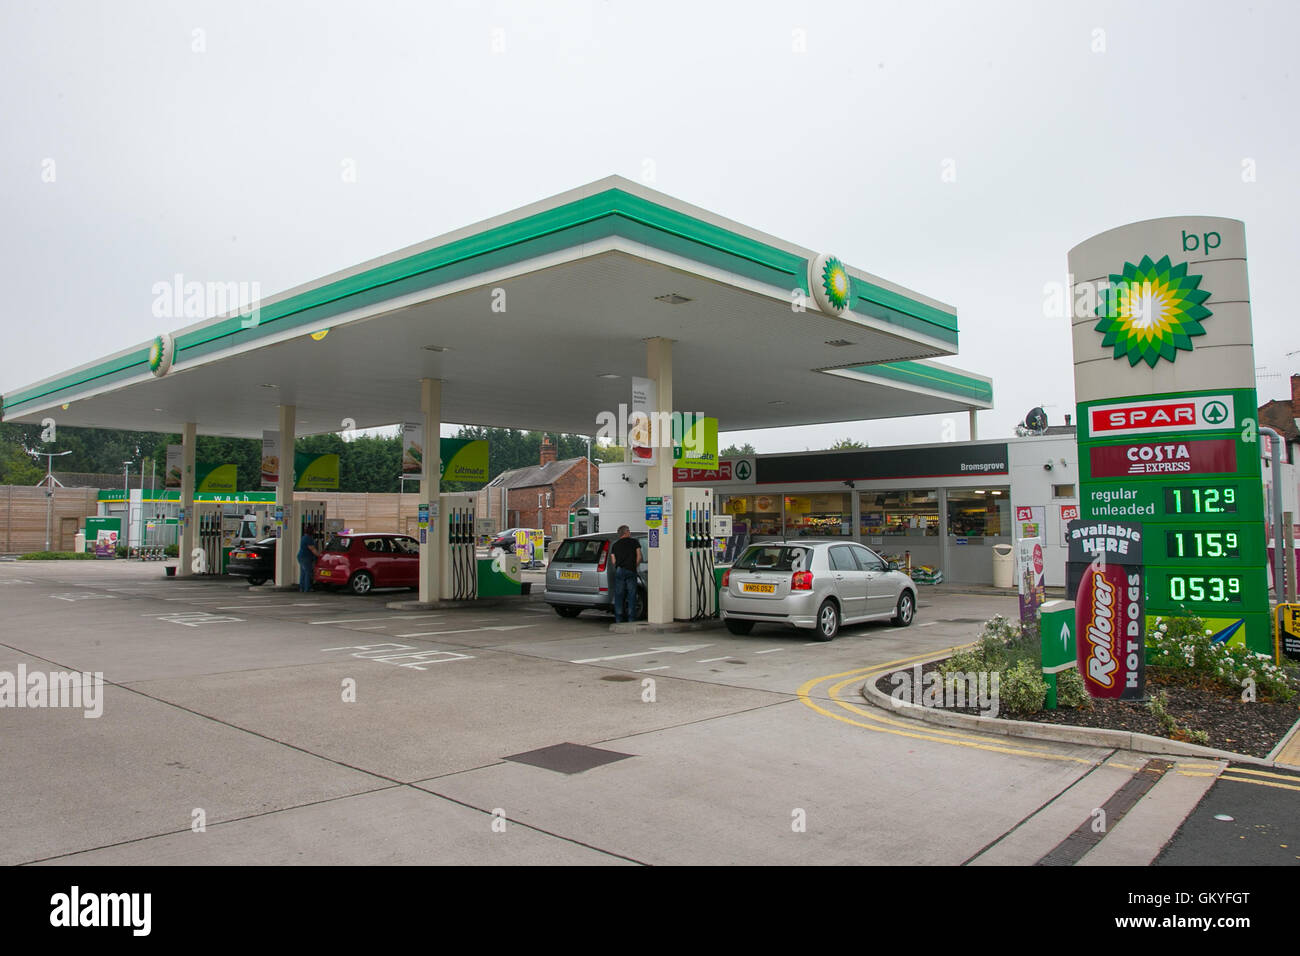 Bp Fuel Station Stock Photos & Bp Fuel Station Stock Images - Alamy